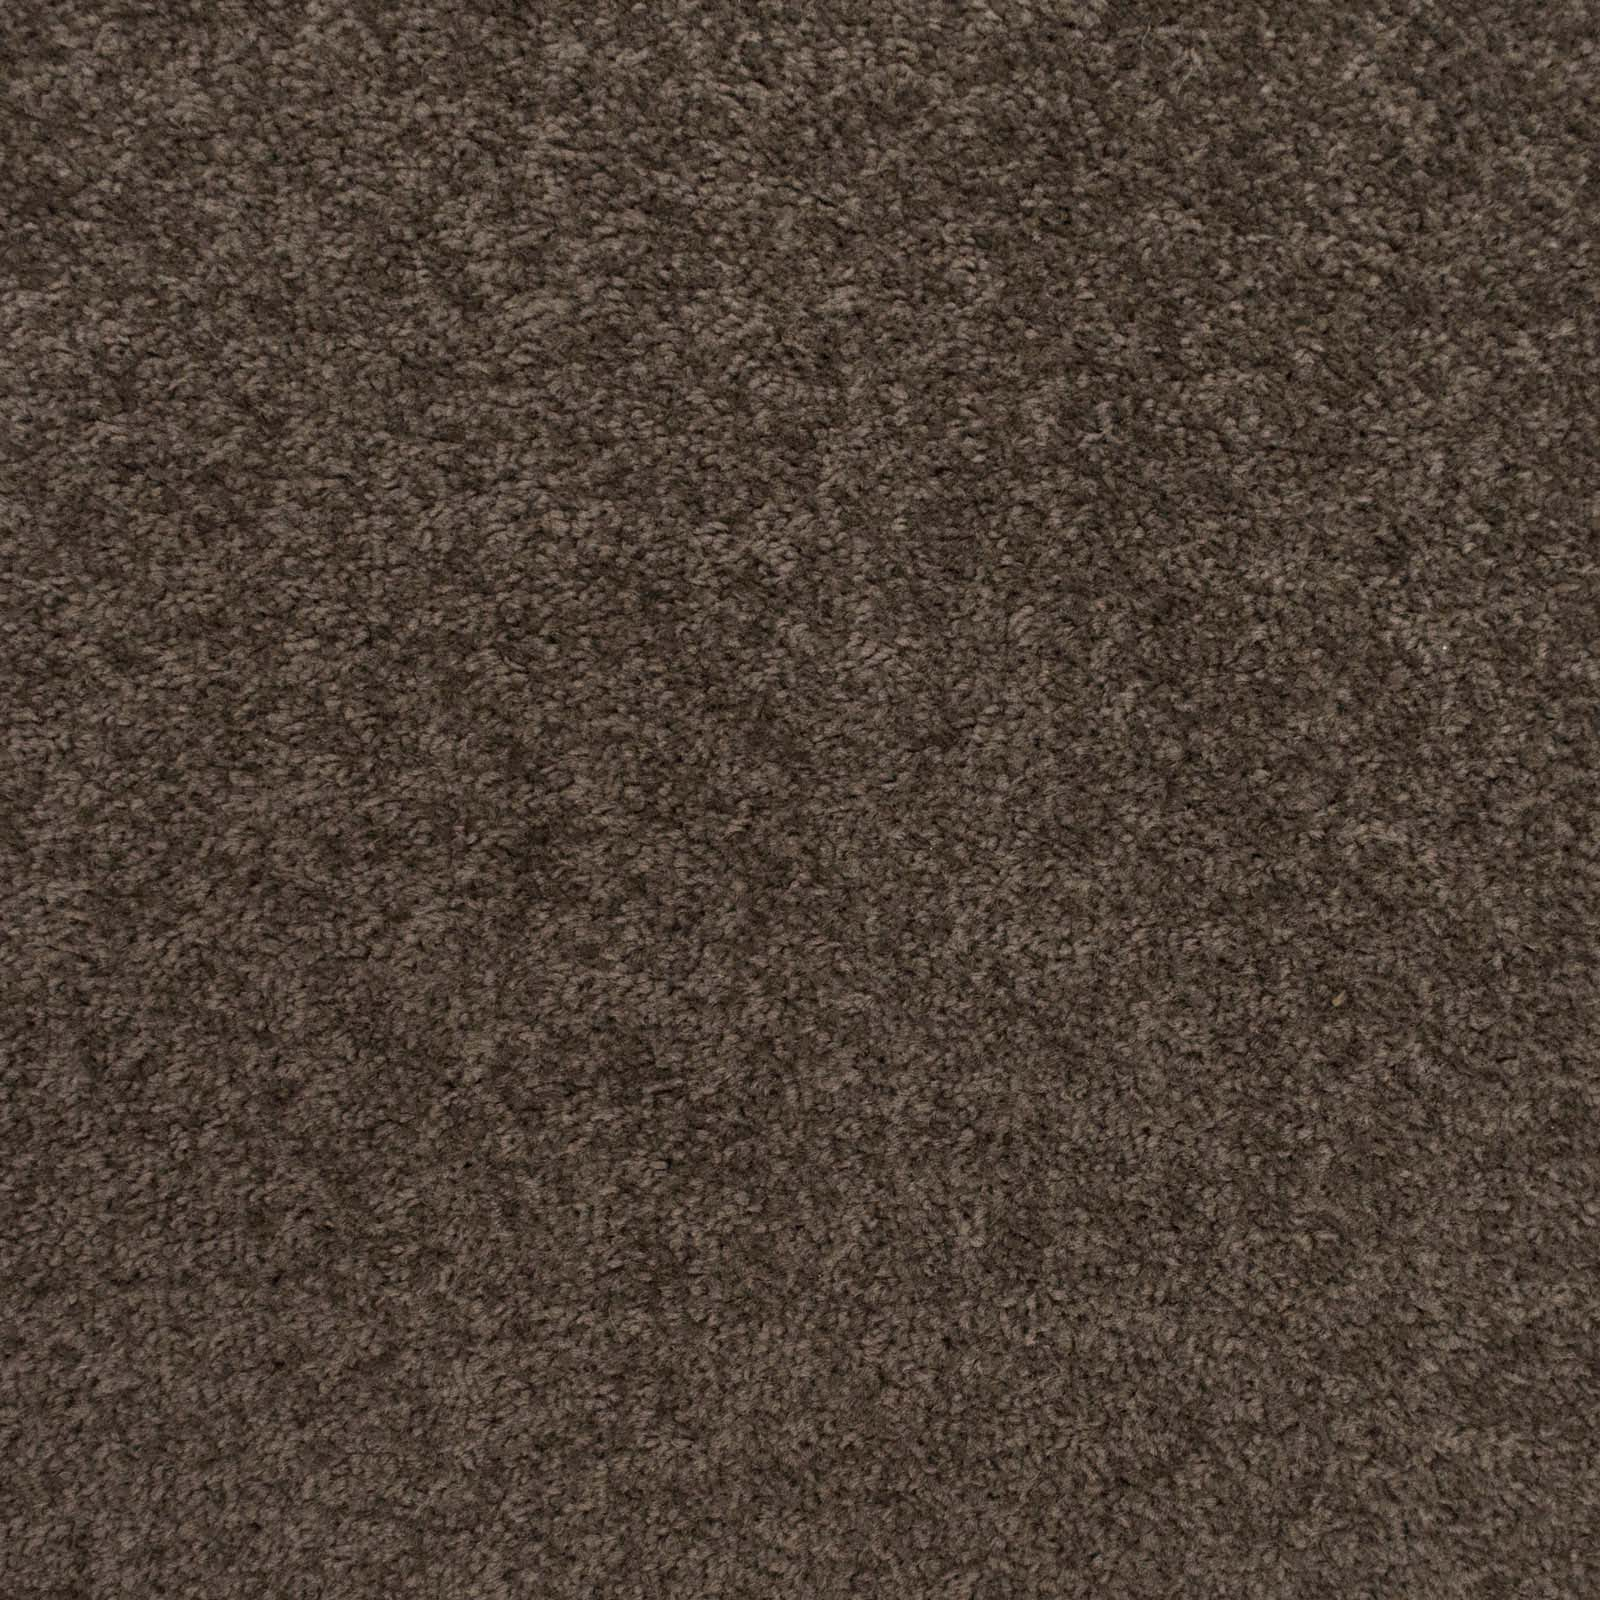 Dark Grey Brown Felt Back Twist Carpet - Far